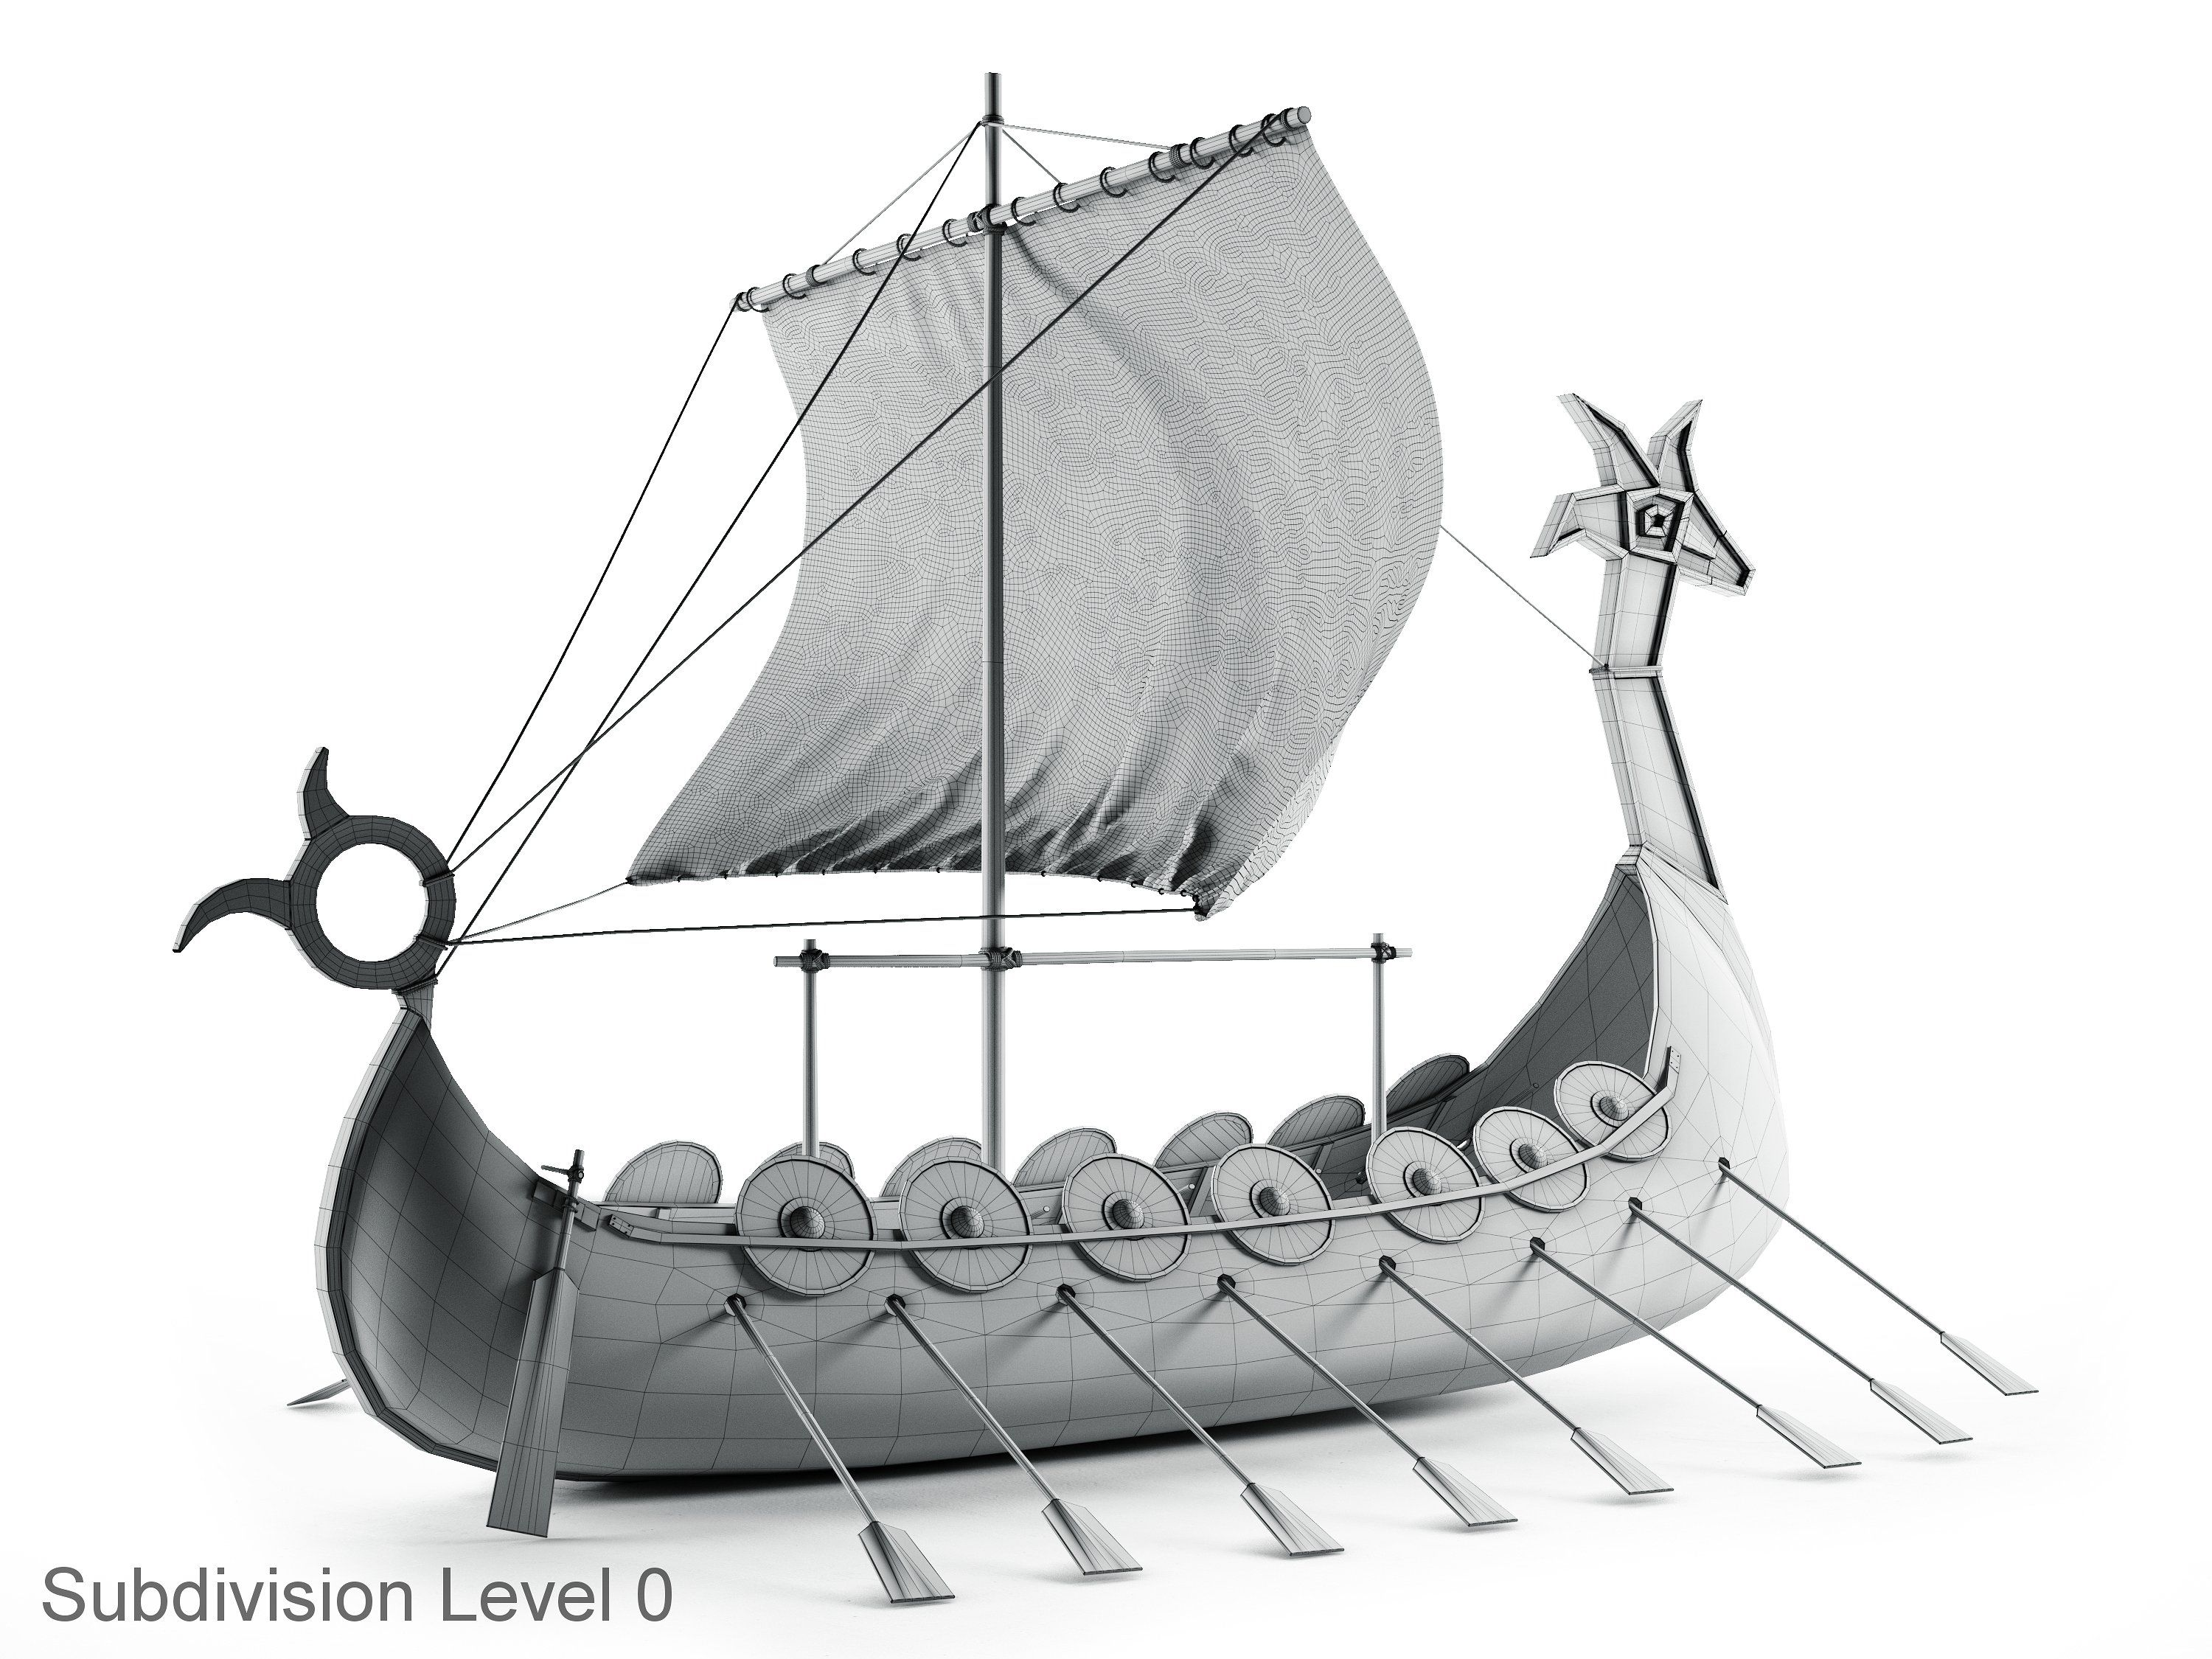 Viking Ship With Images Viking Ship Vikings Typography